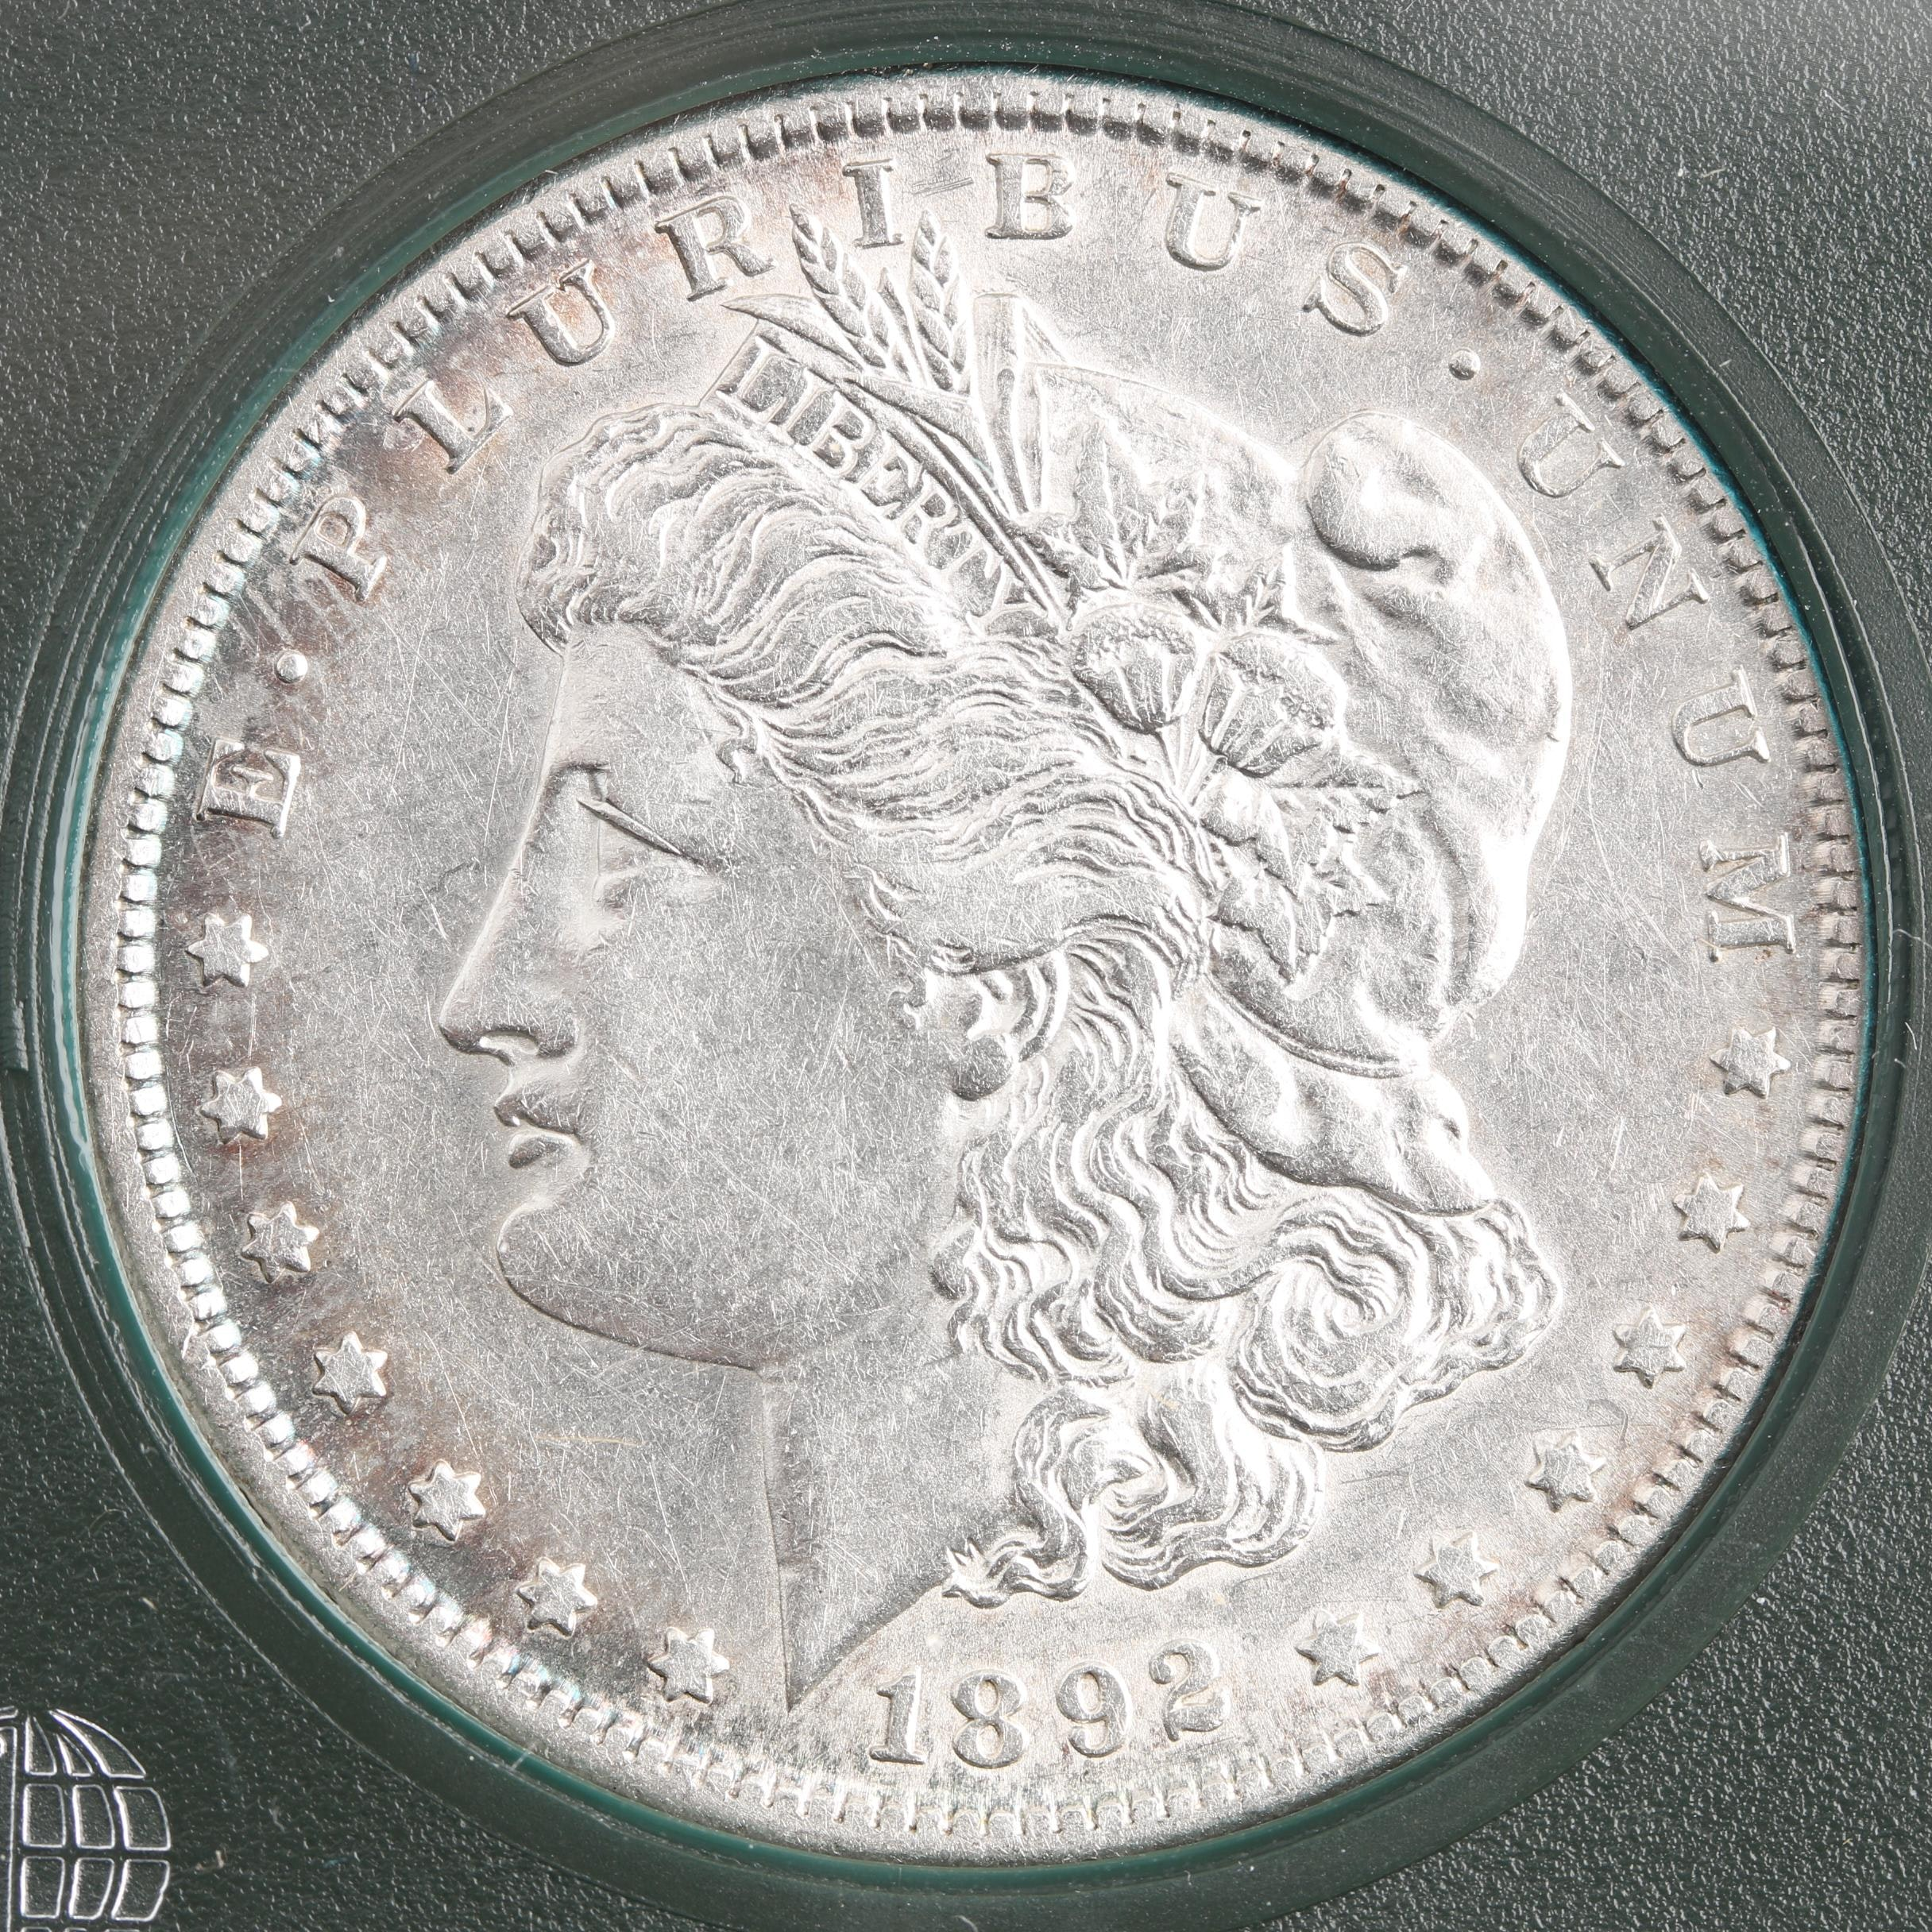 Low Mintage 1892-S Silver Morgan Dollar